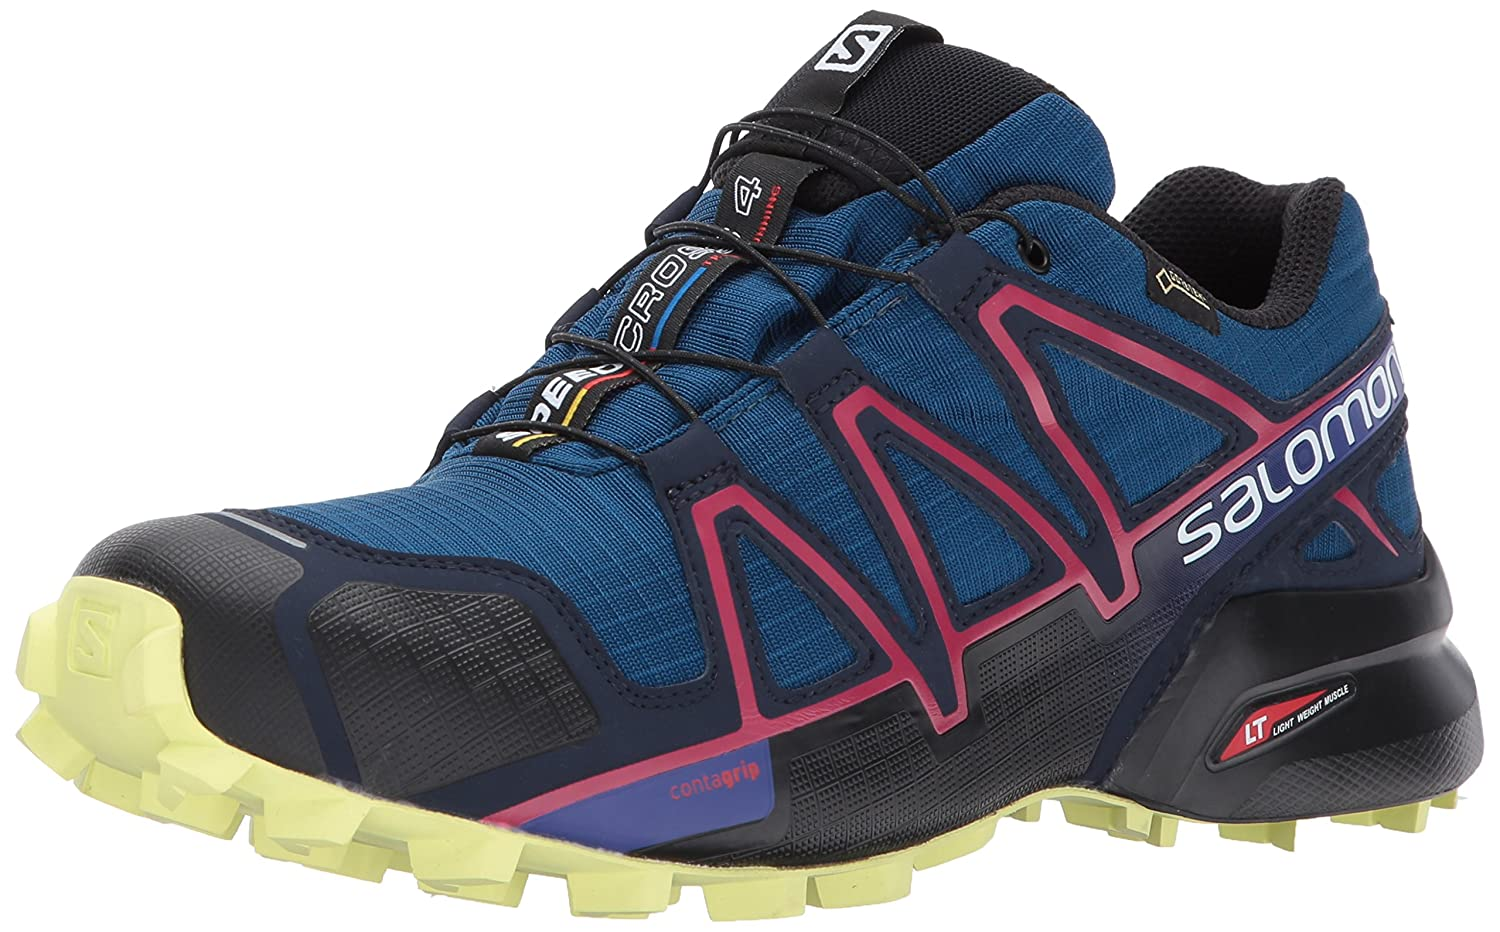 Salomon Women's Speedcross 4 GTX W Trail Runner B01N98B9M7 9 B(M) US|Poseidon/Virtual Pink/Sunny Lime